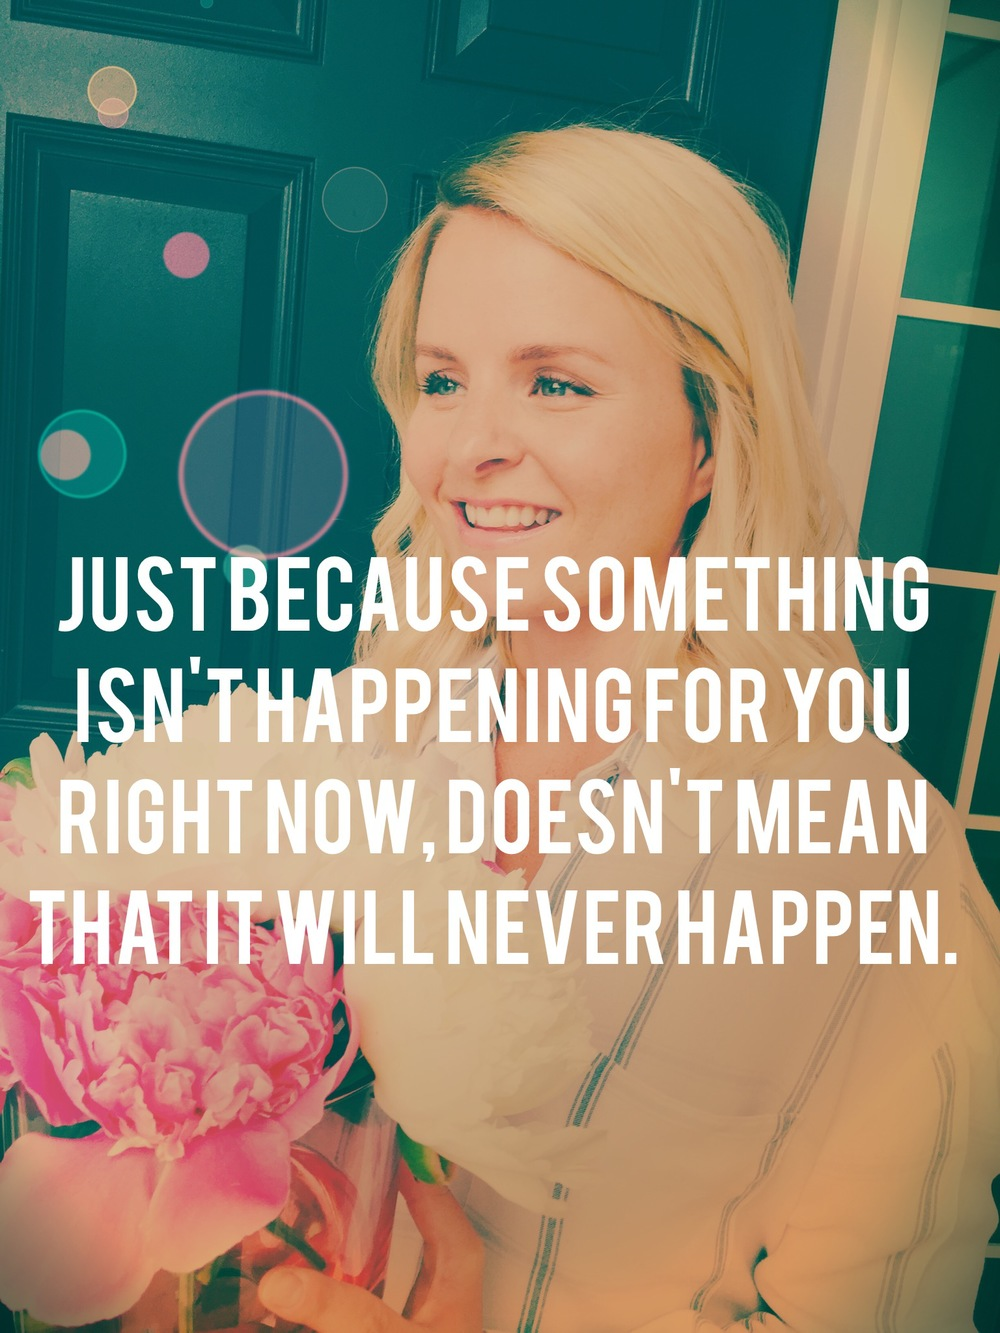 Just because something isn't happening for you right now, doesn't mean that it will never happen.